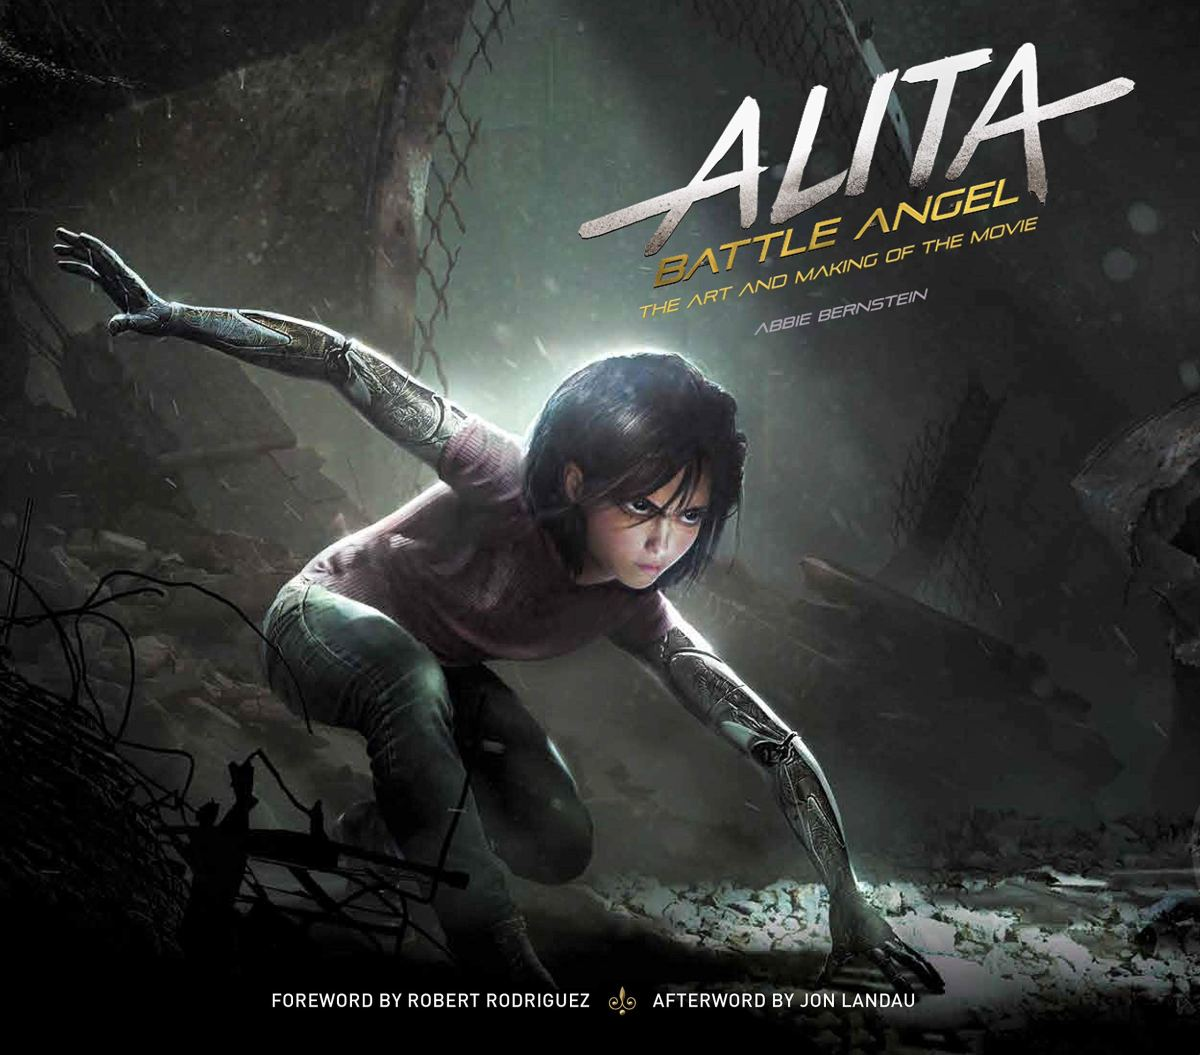 Alita Battle Angel: Review: The Art and Making of the Movie